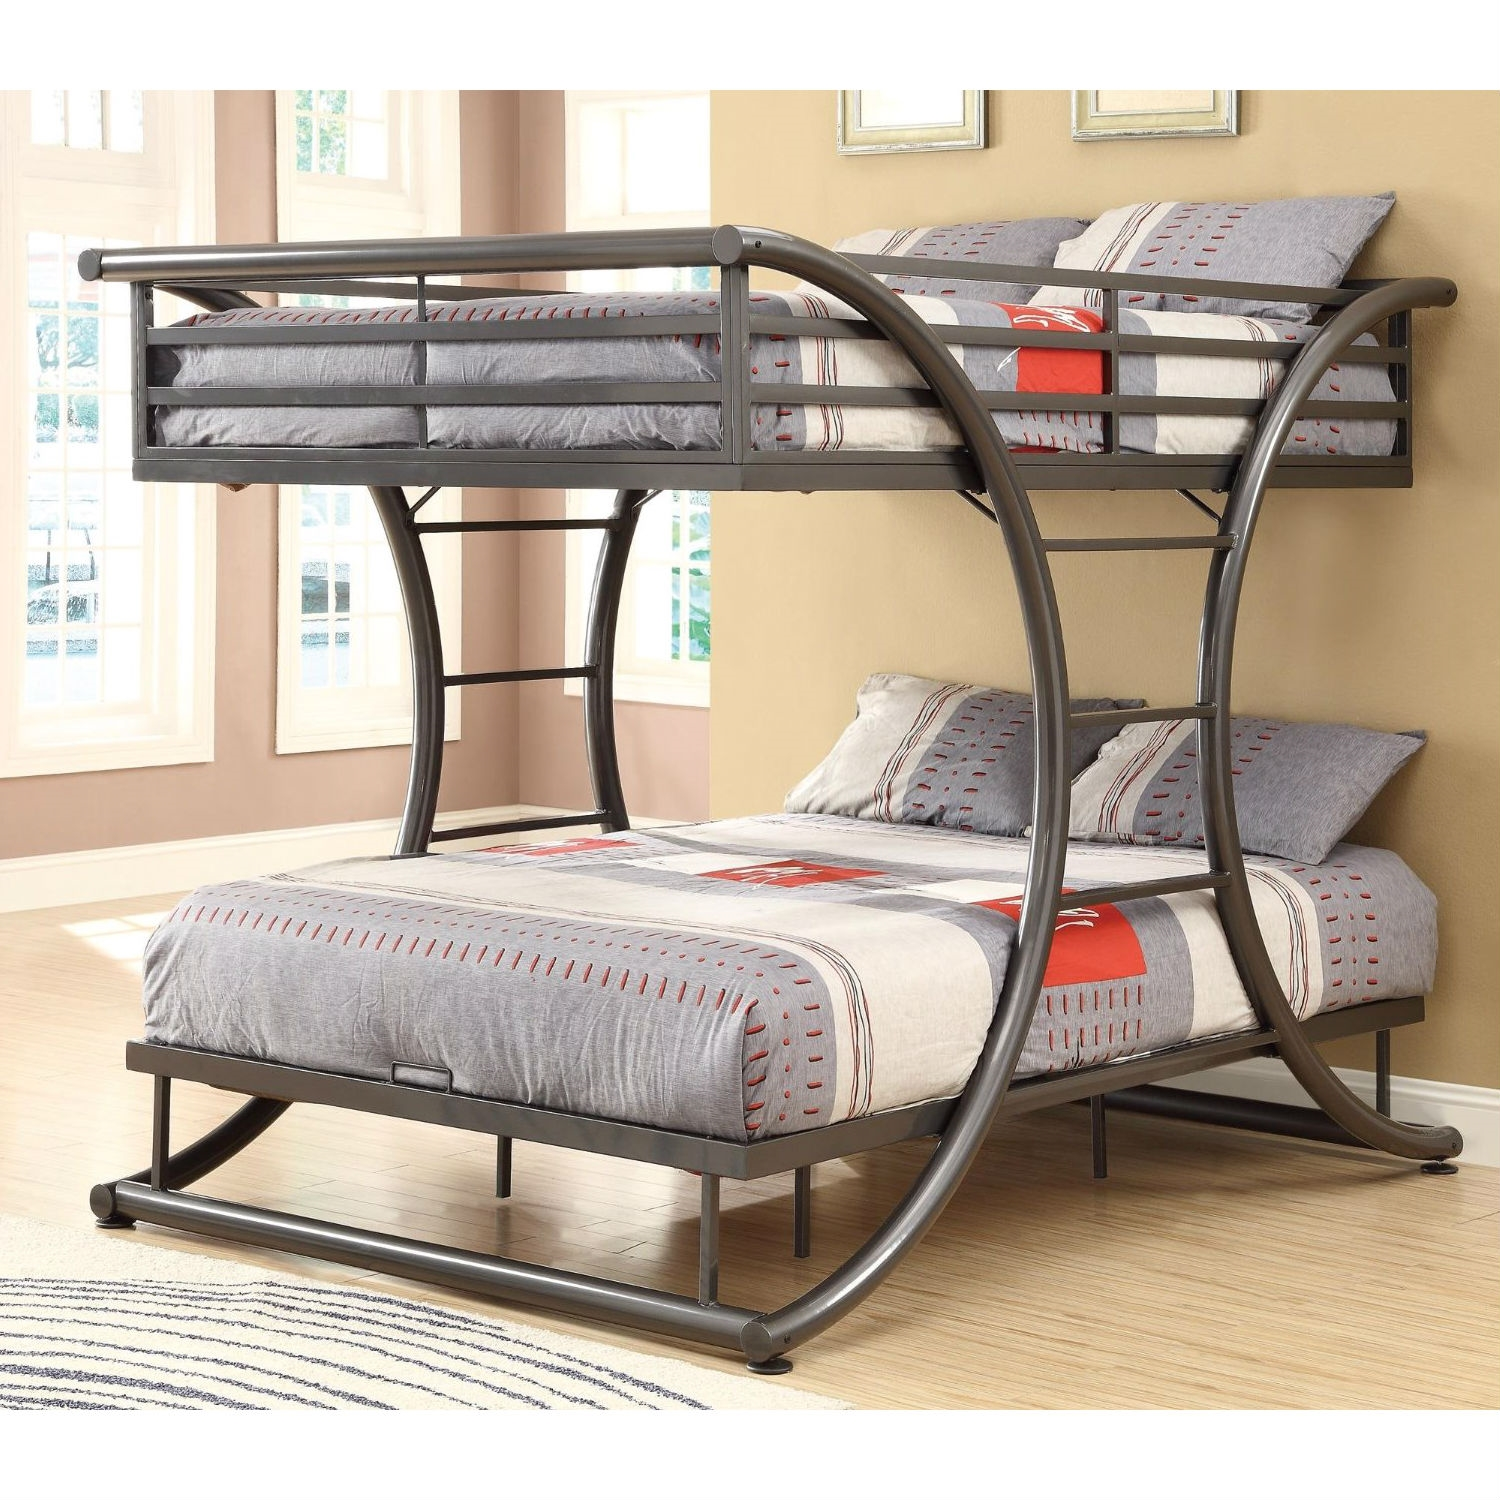 Charmant Full Over Full Size Modern Metal Bunk Bed Frame In Gunmetal Finish